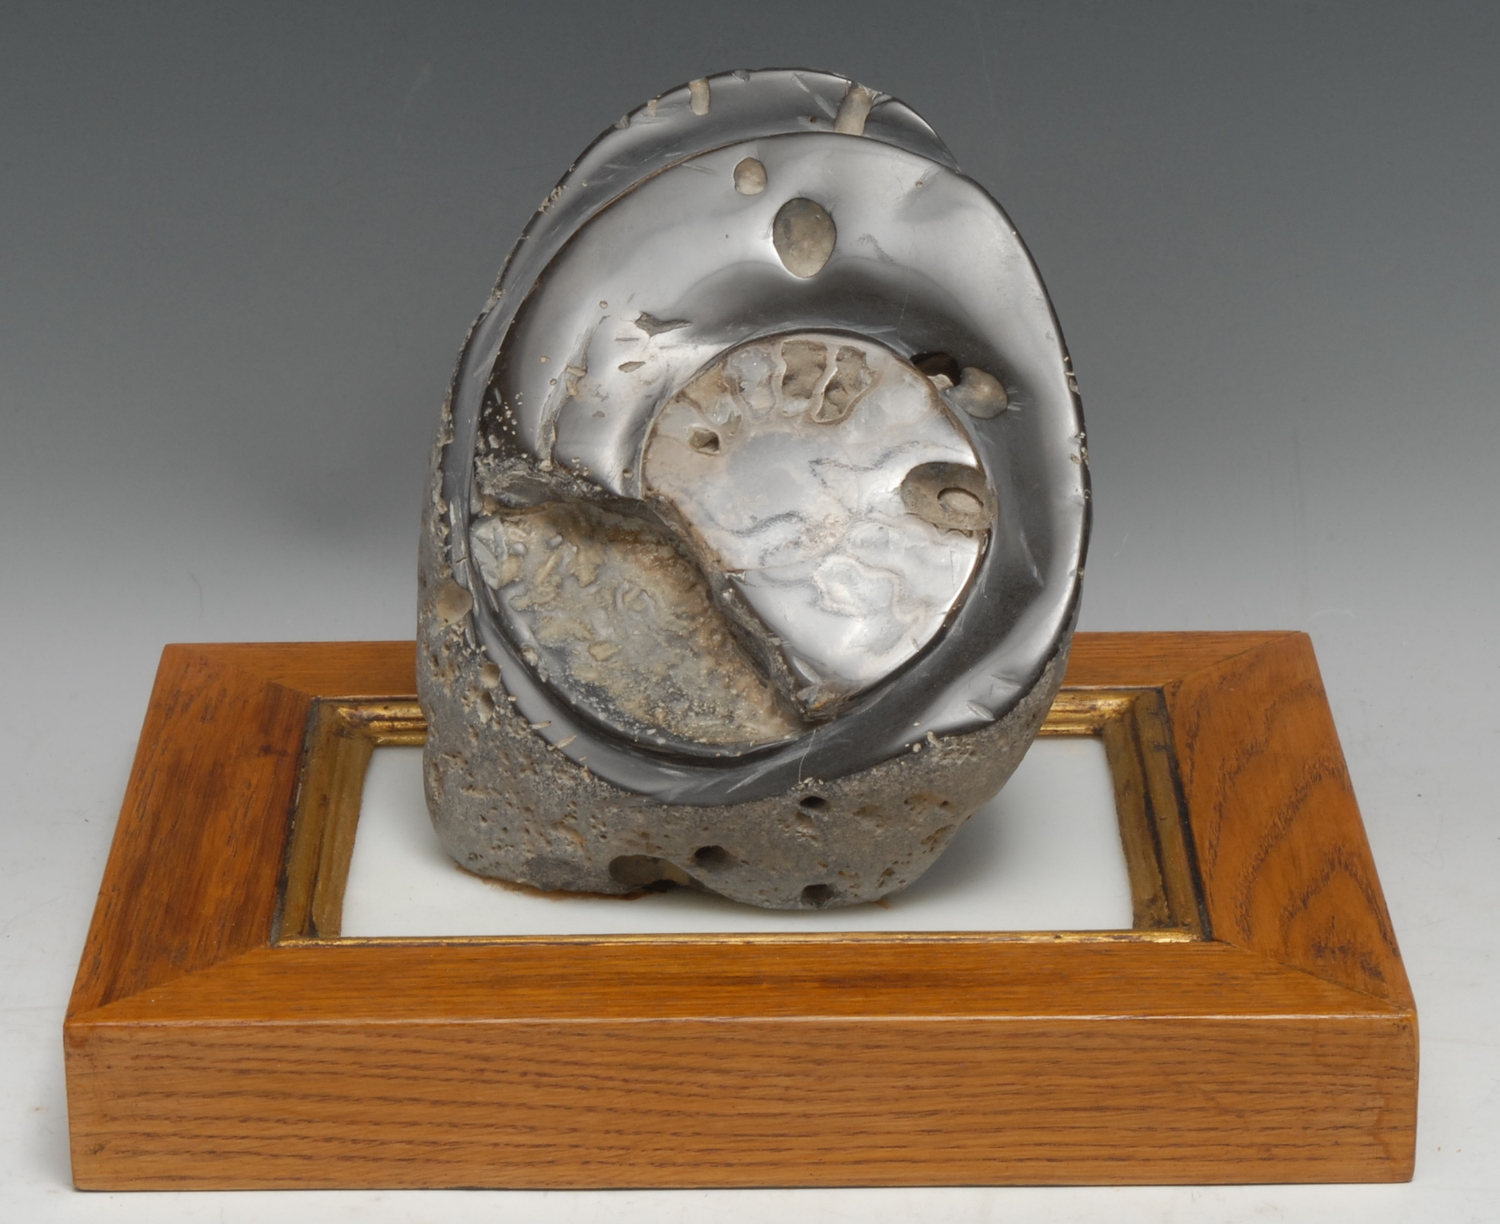 Natural History - Geology, Palaeontology - an ammonite specimen, cut and polished, 15.5cm wide,